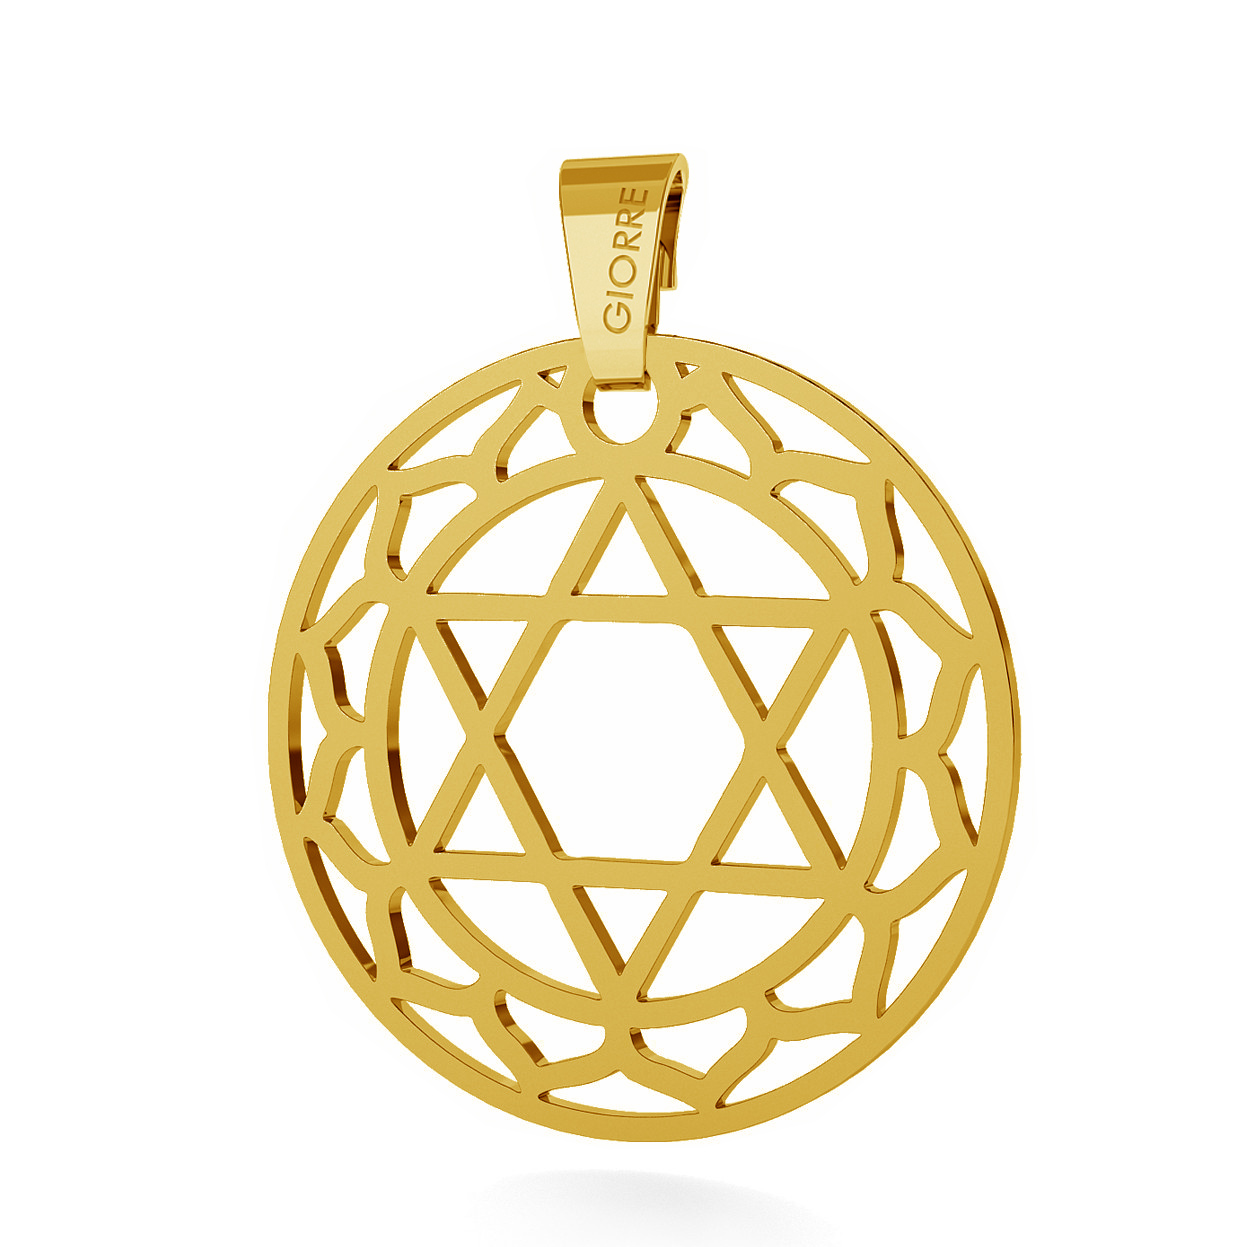 CHARM 71, HEART CHAKRA, STERLING SILVER (925) RHODIUM OR GOLD PLATED